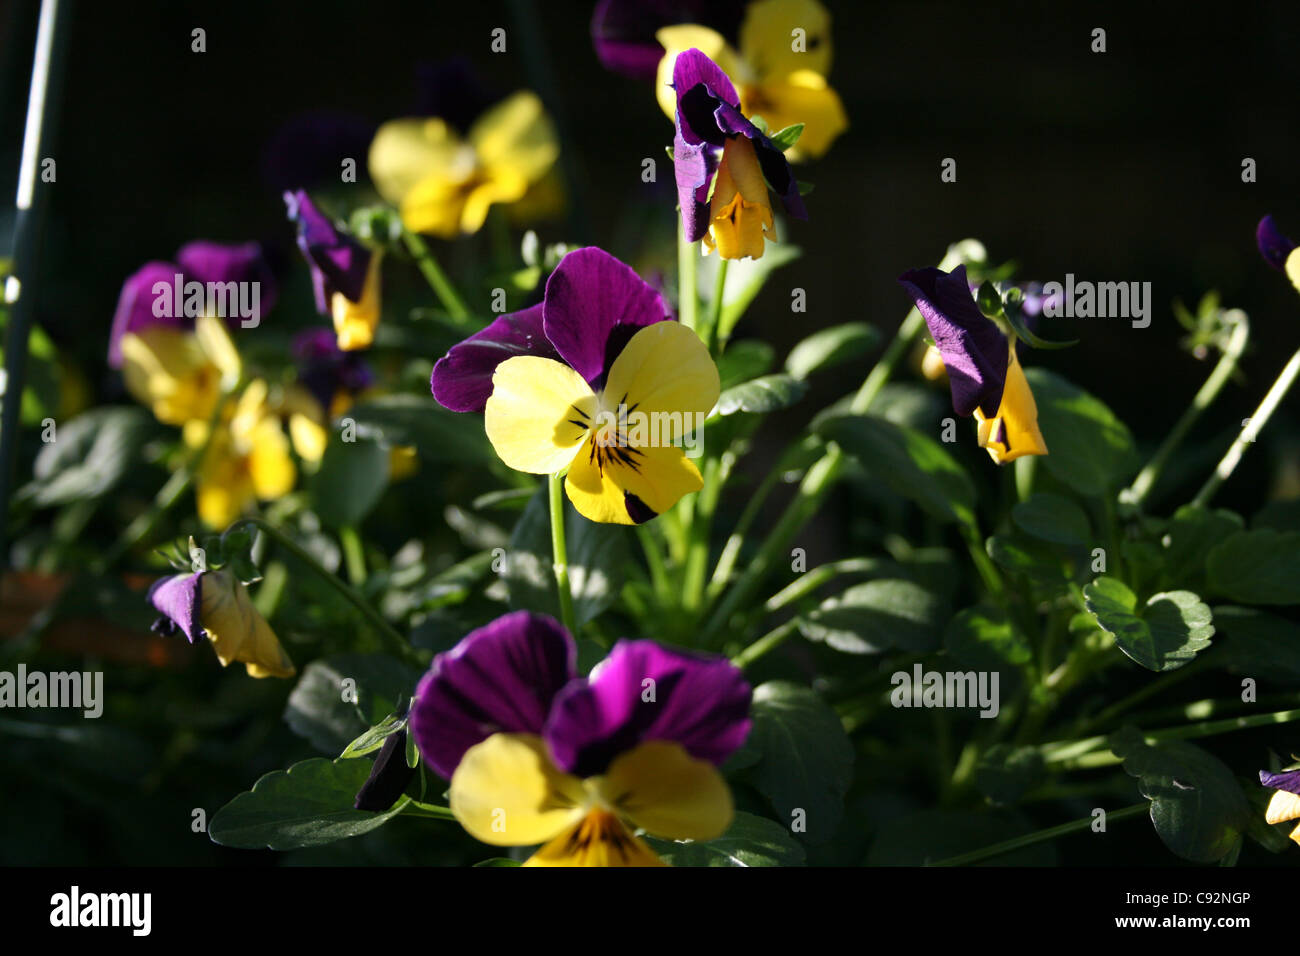 Double colour Viola purple and yellow - Stock Image